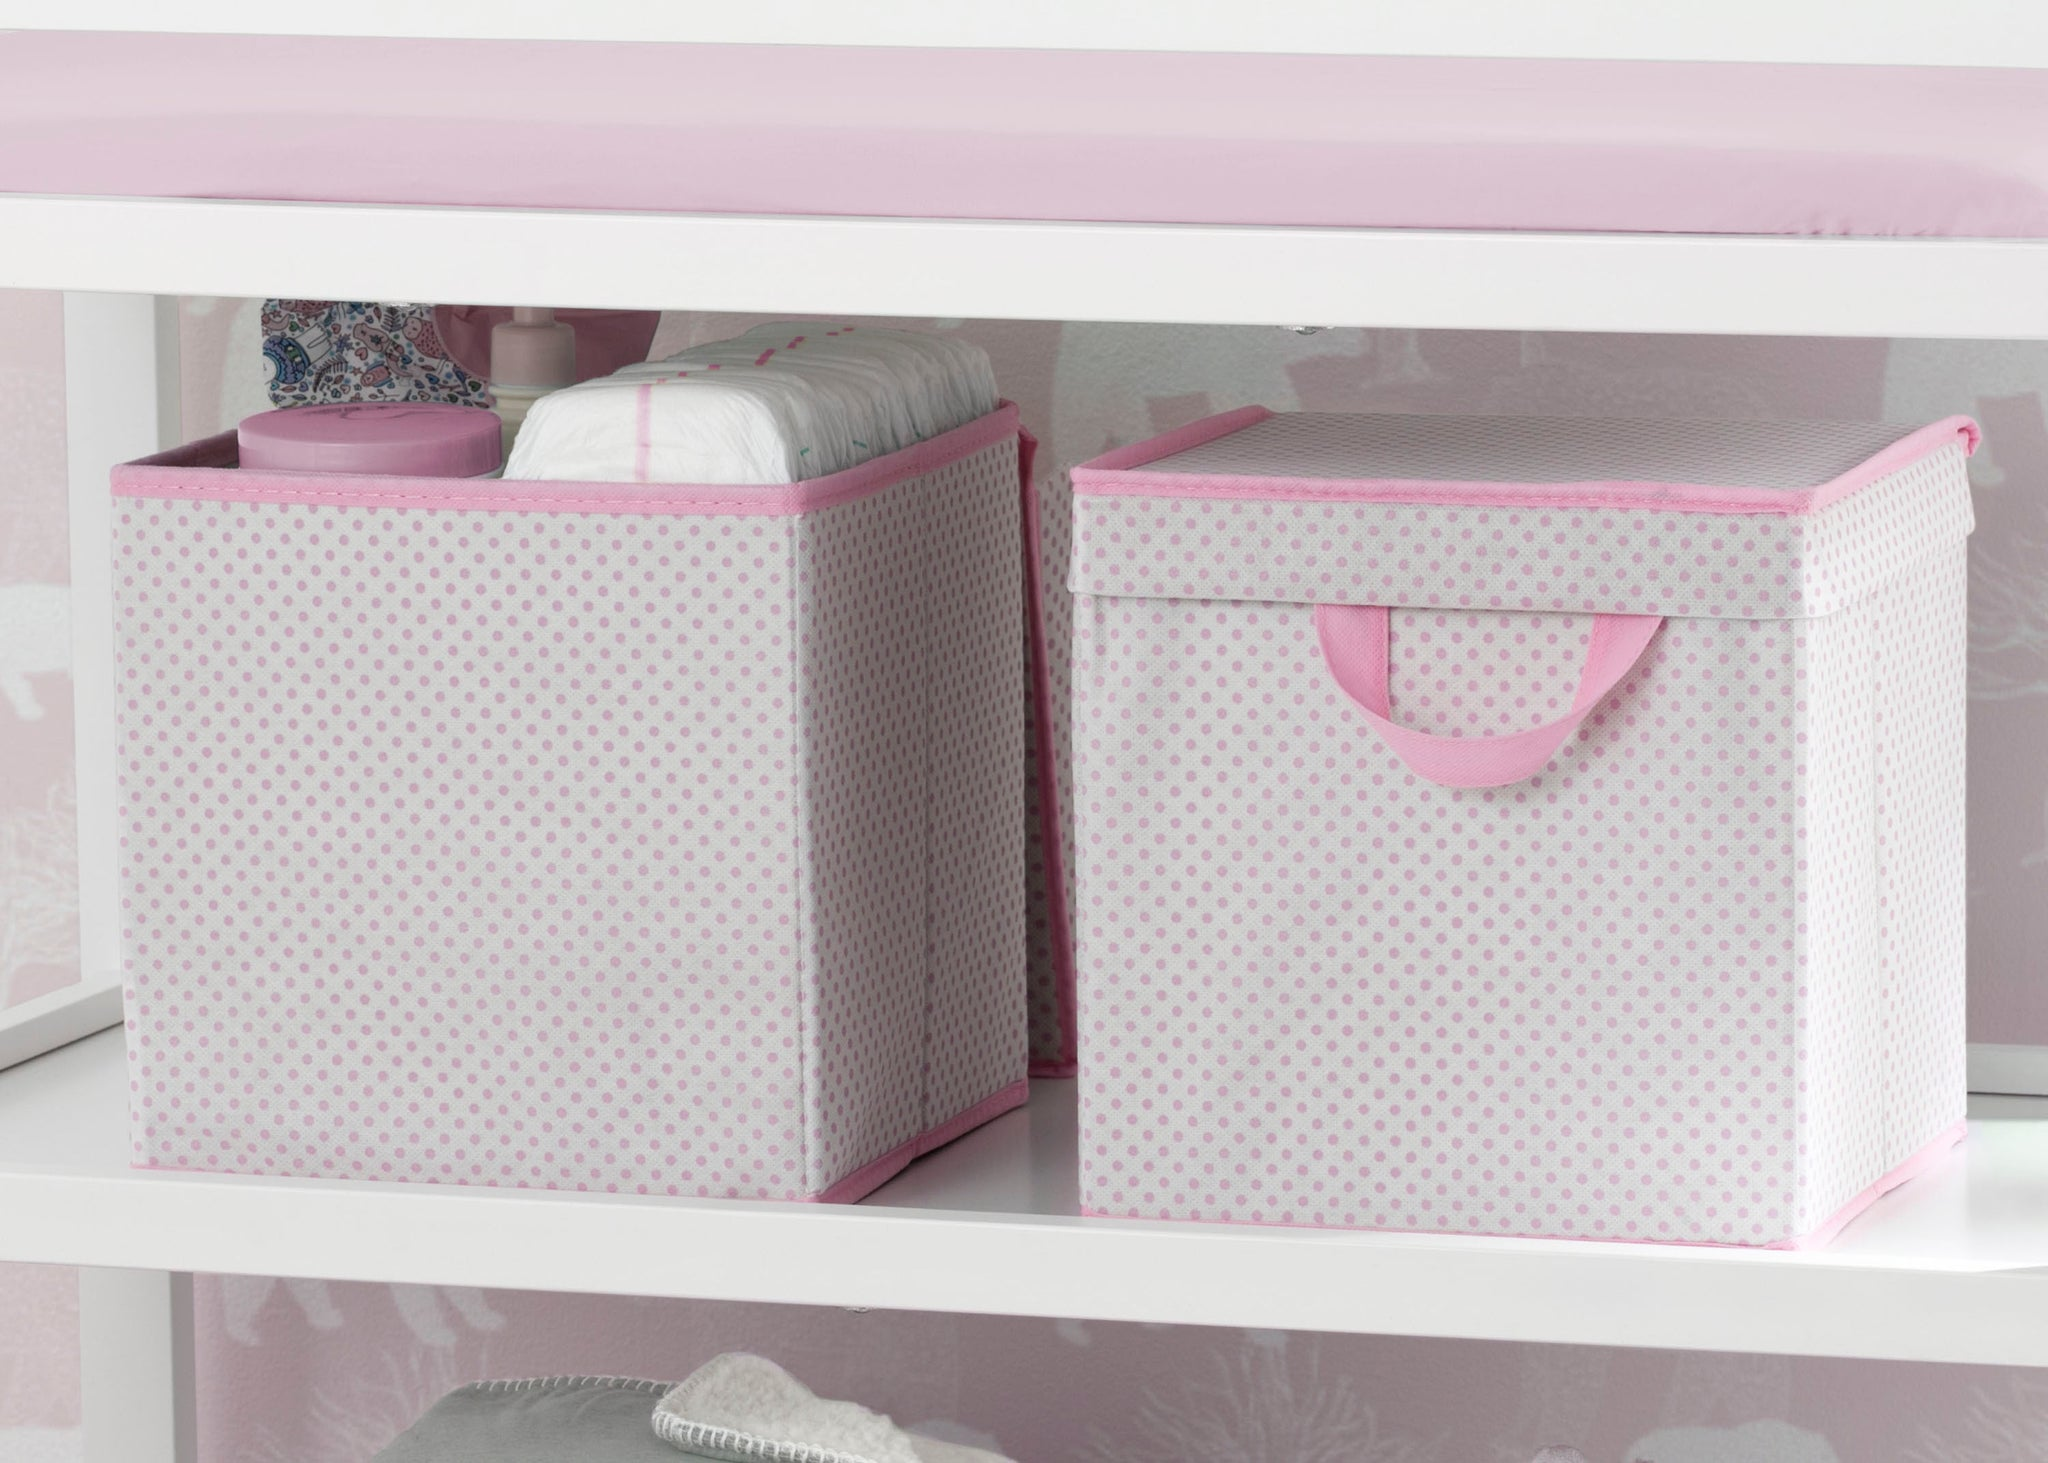 Delta Children Pink Polka Dots (693) 2-Pack Lidded Storage Bins (SS2165), Details, f1f